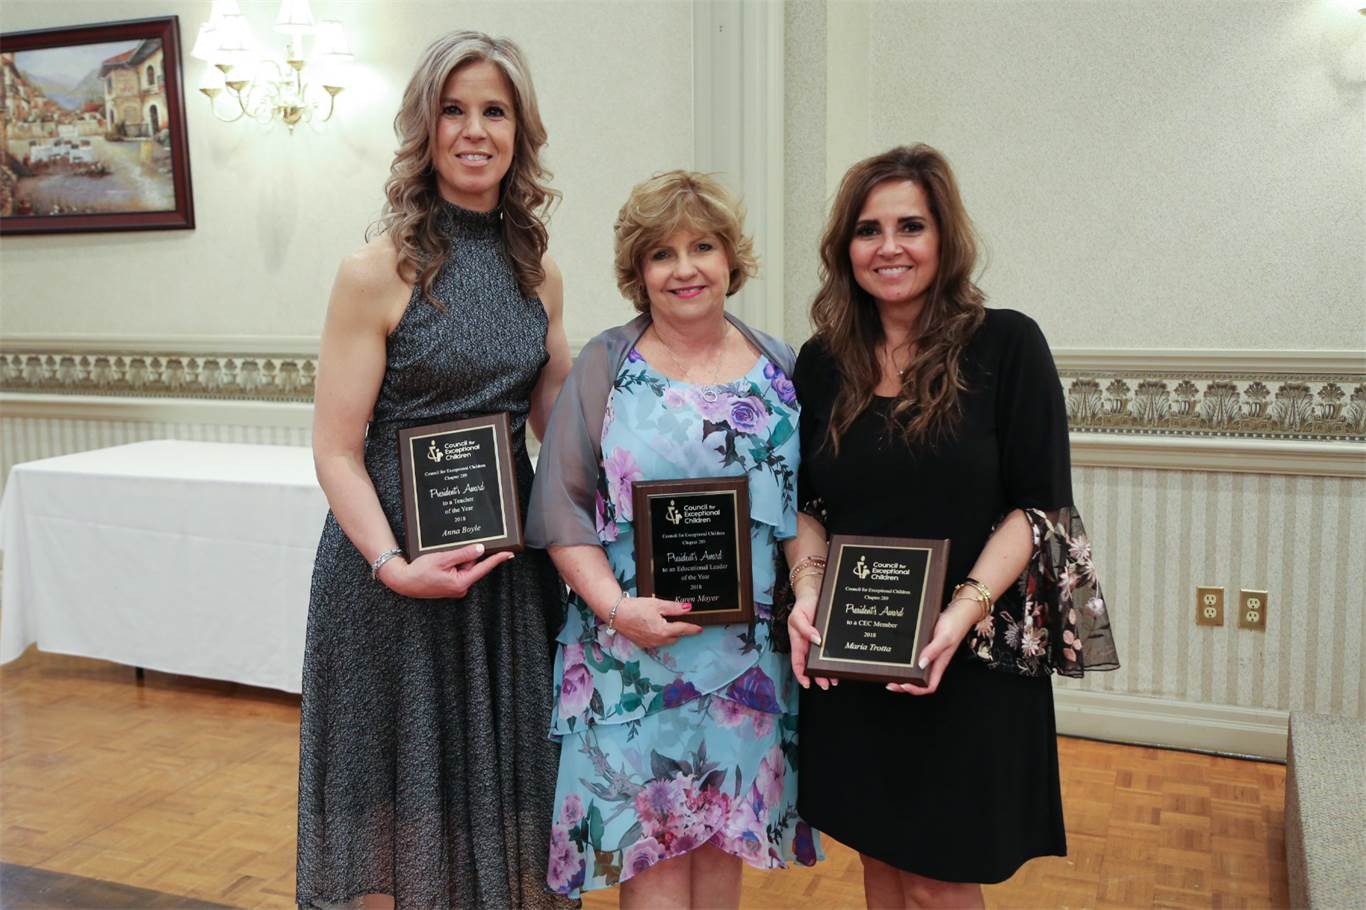 From left to right, Anna Boyle, Karen Moyer and Maria Trotta were presented with the President's Award to Teacher of the Year, President's Award to a CEC Member, and President's Award to an Educational Leader, respectively, at the Council for Exceptional Children's annual